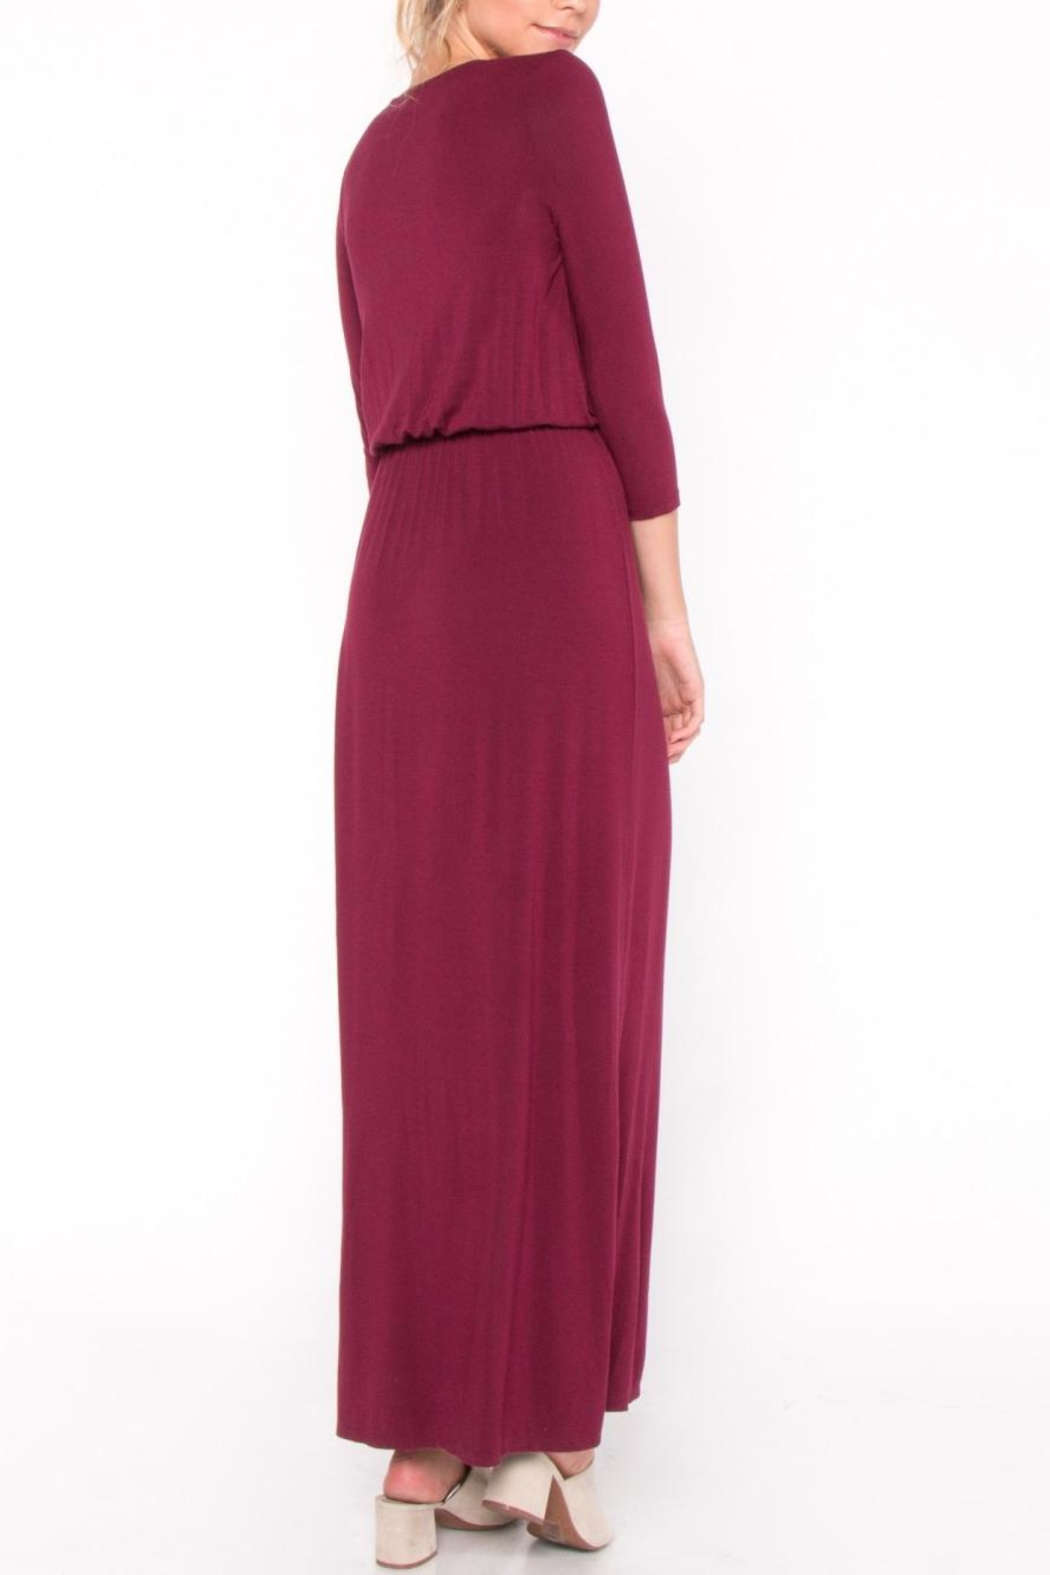 Everly Jersey Overlay Maxi Dress - Back Cropped Image